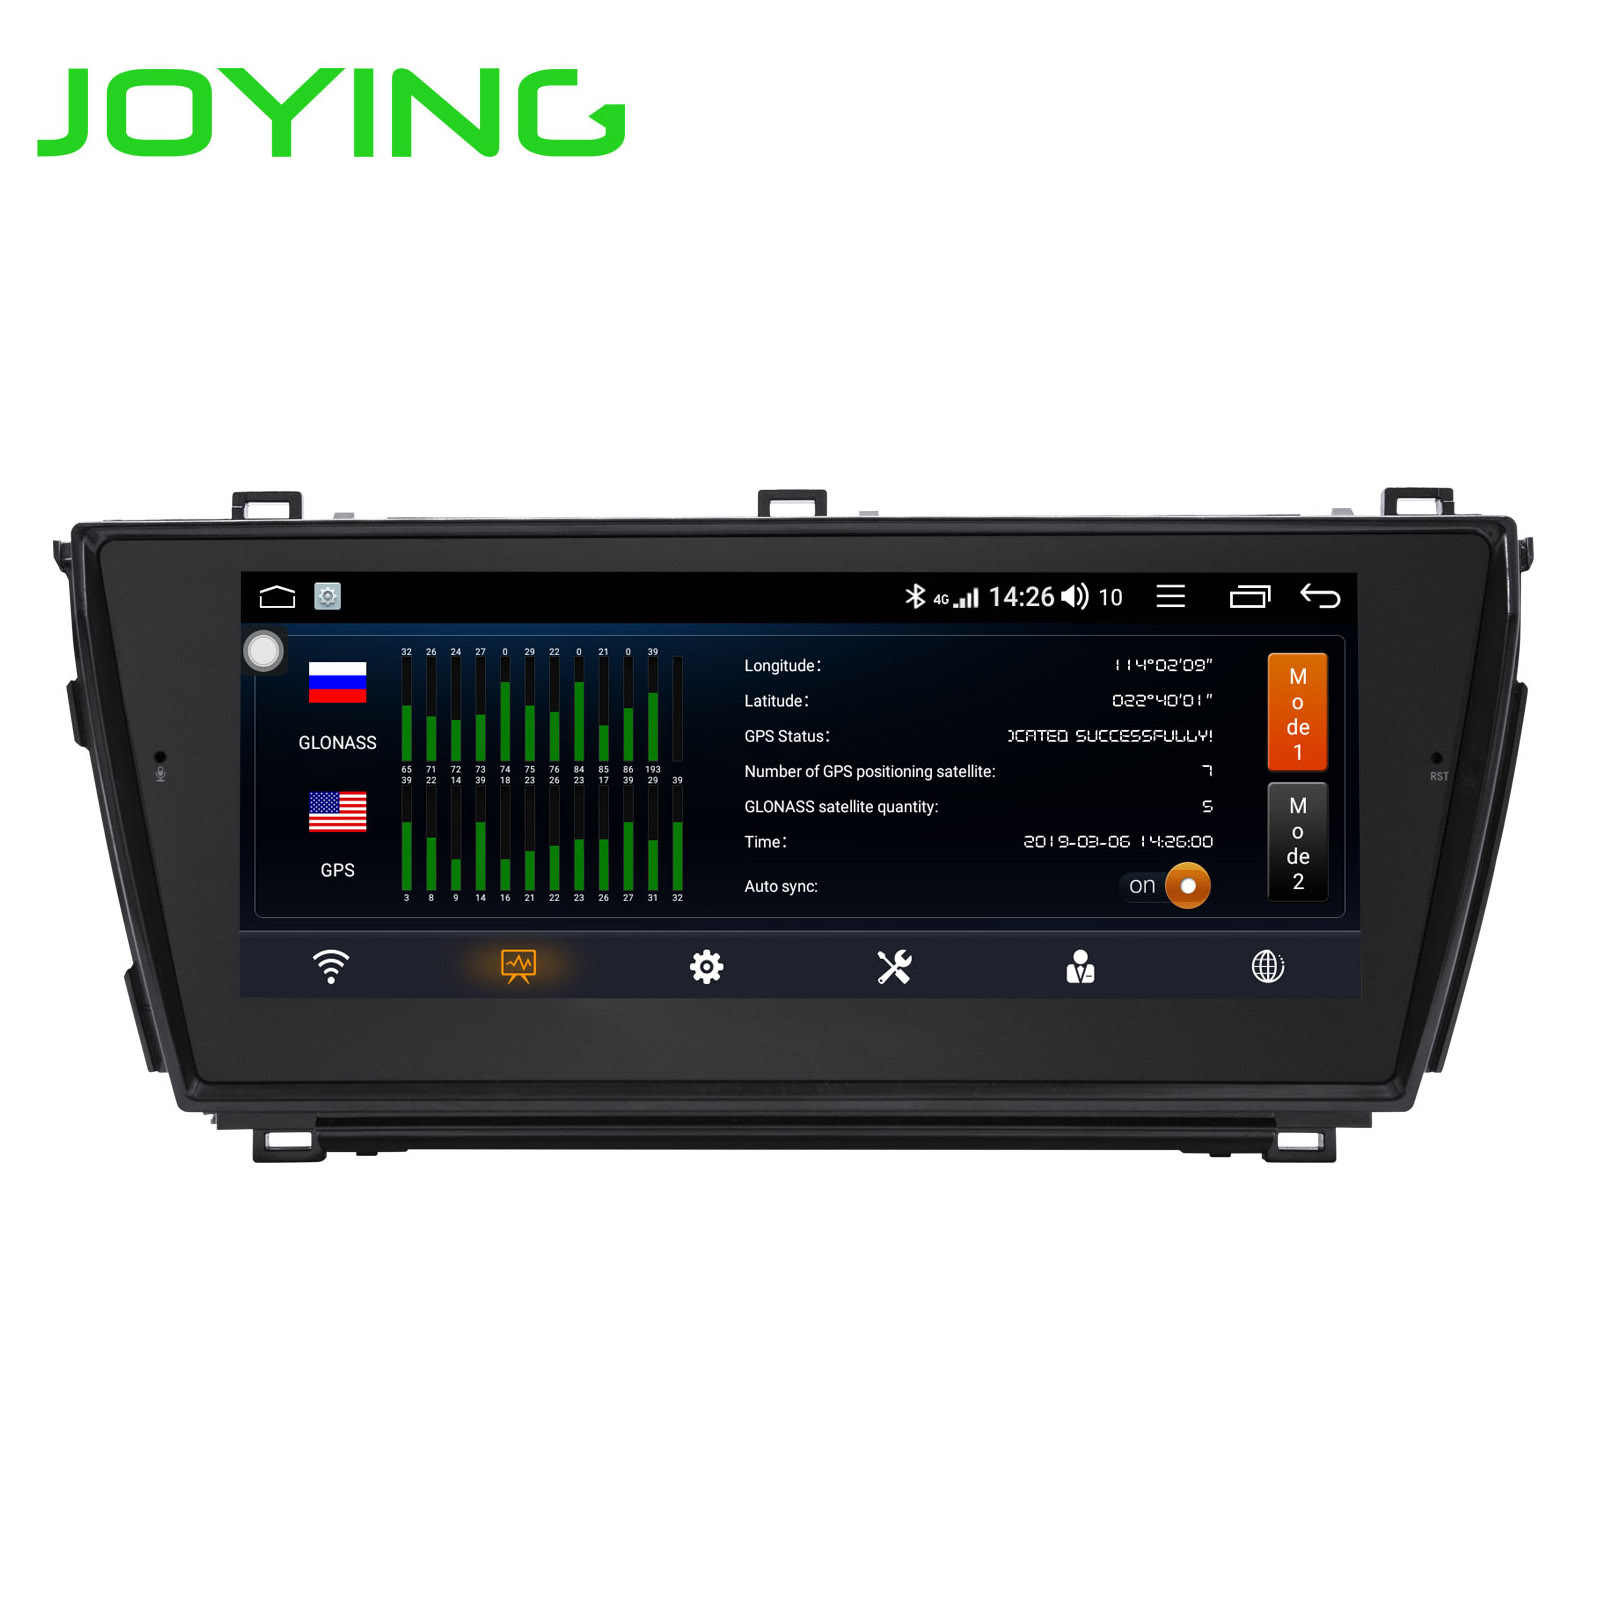 Joying Android 8.1 Octa Core 4G+64G Car Audio Radio Head Unit for Toyota Corolla 2014 2015 2016 Stereo GPS Multimedia Player